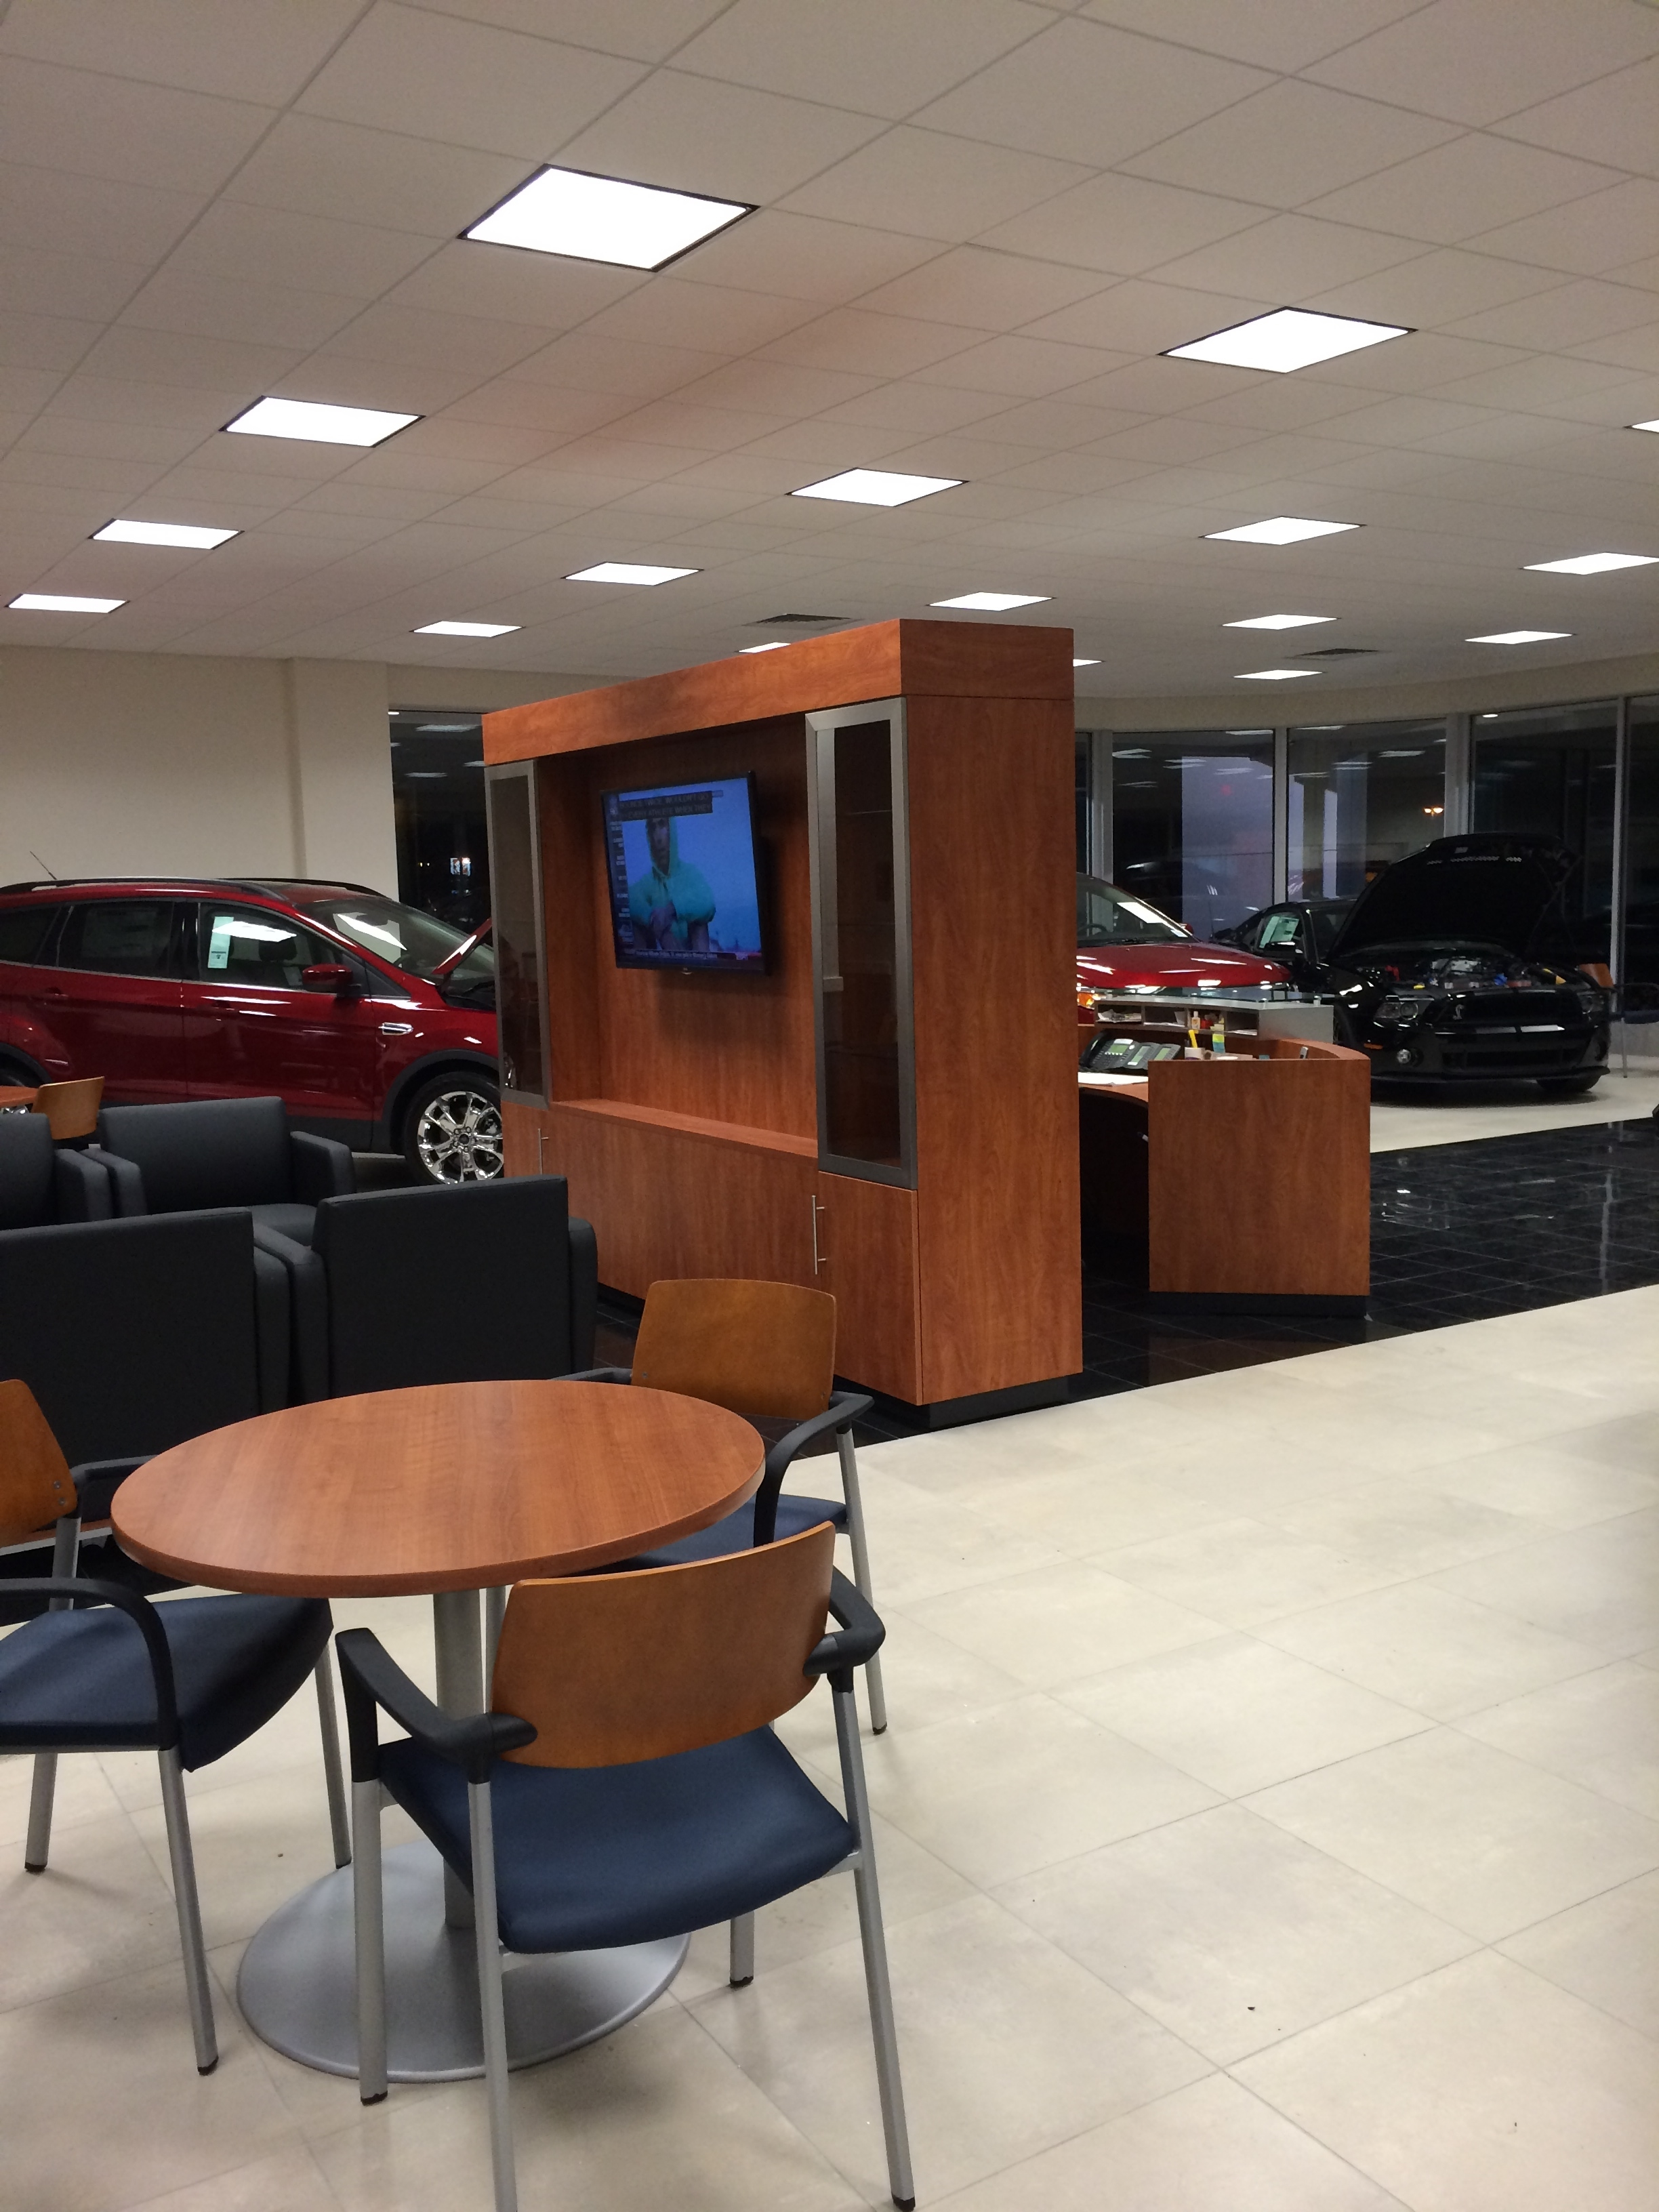 Maplecrest Ford Lincoln Of Union In Vauxhall Nj 07088